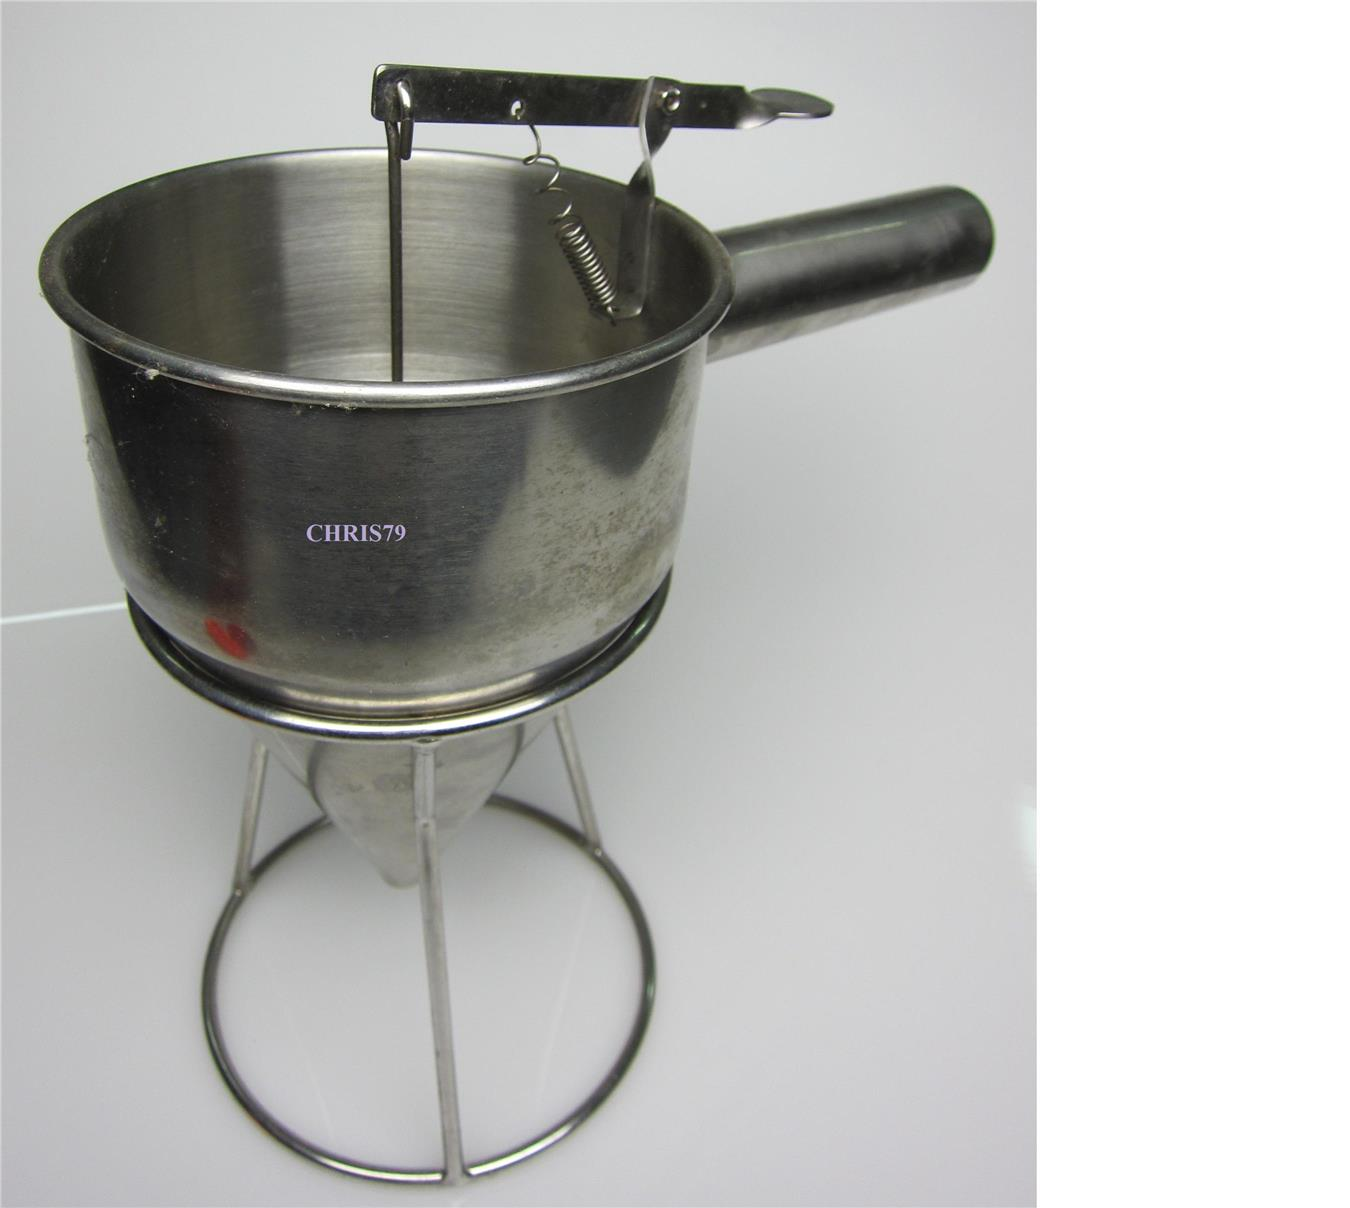 CUP CAKE MAKER STAINLESS STEEL